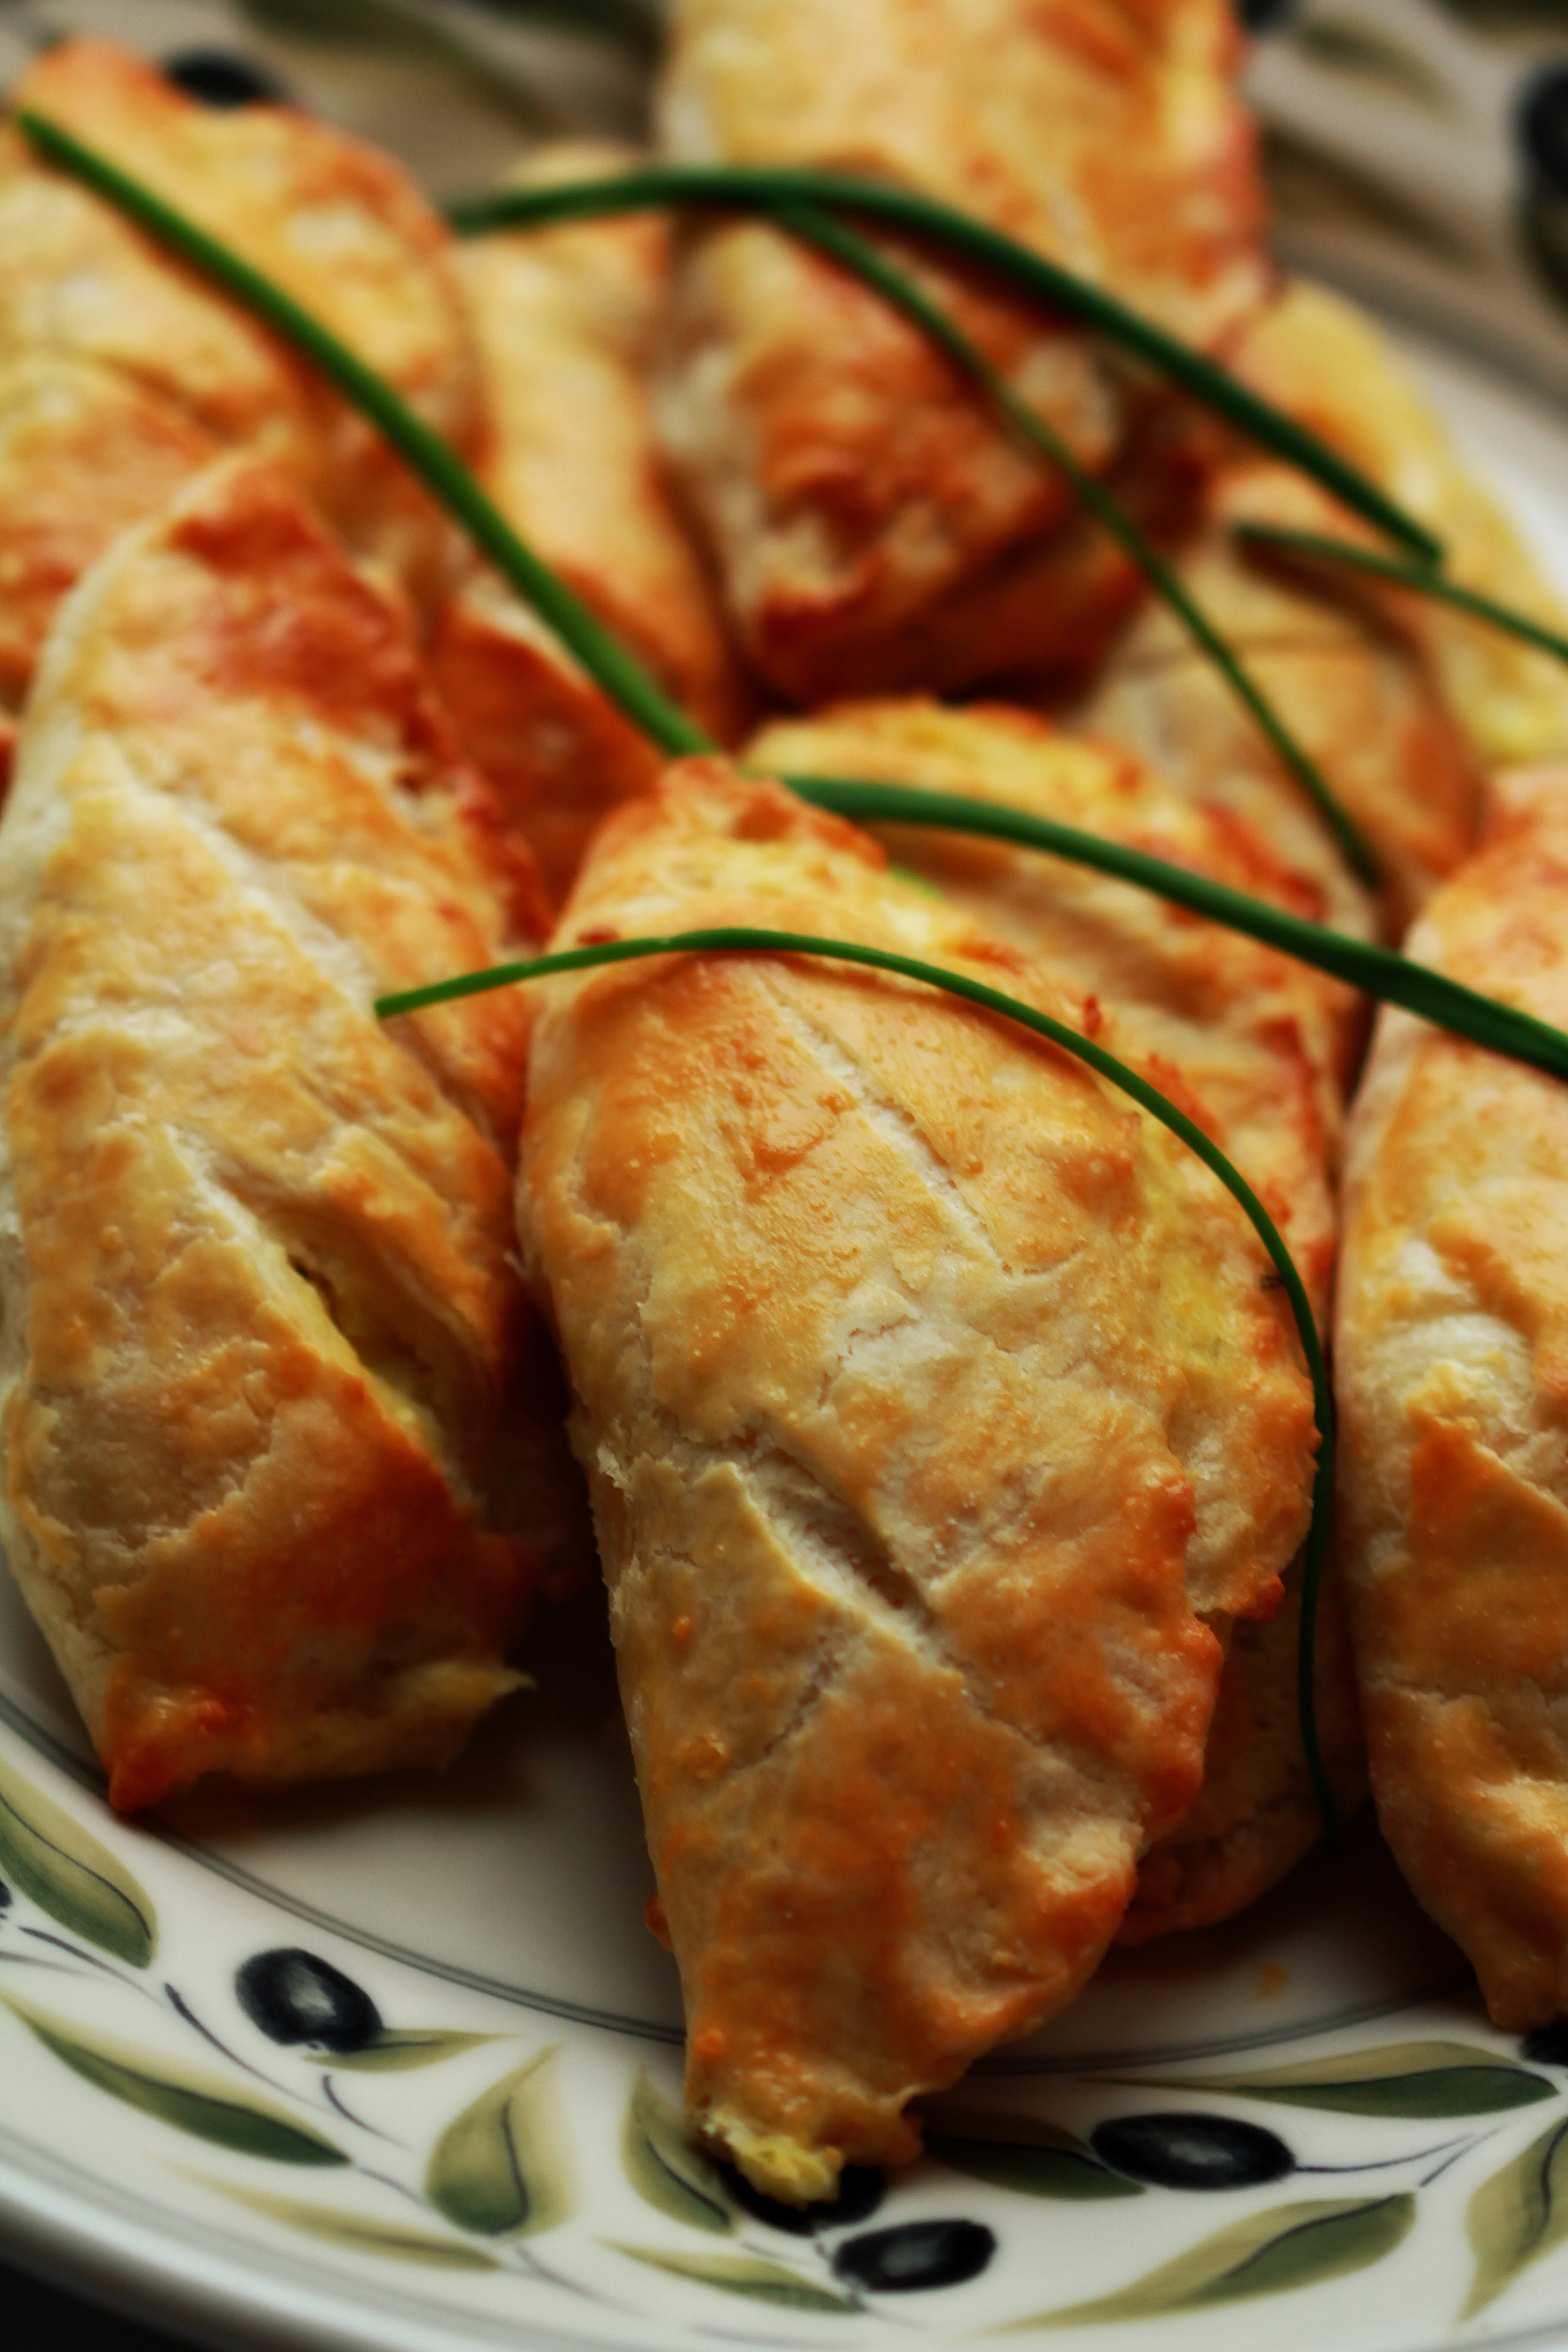 ?Savory Cheese Turnovers by Dena T. Bray